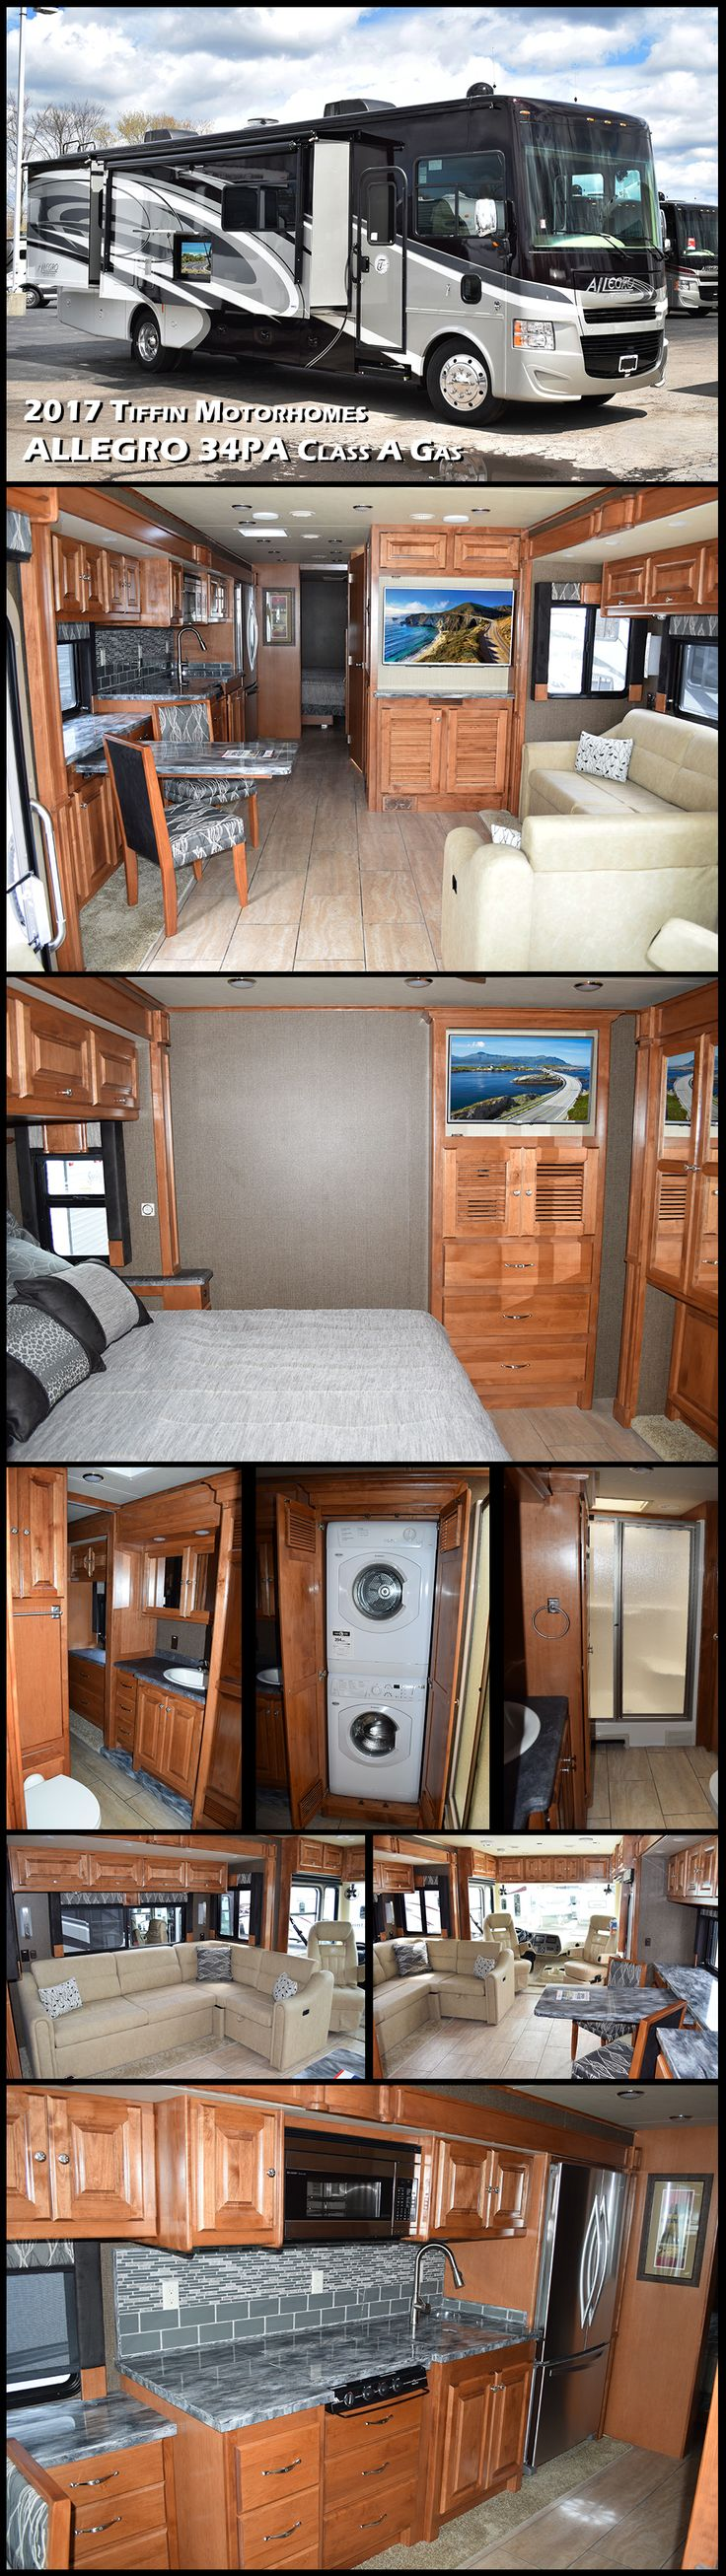 Whether it is across the country or to the campground for a long weekend, the 2017 ALLEGRO 34PA Class A Gas motorhome by Tiffin Motorhomes will get you there in style and comfort! Inside this model you will find quad slides, a rear bedroom, and plenty of space to enjoy your time away.